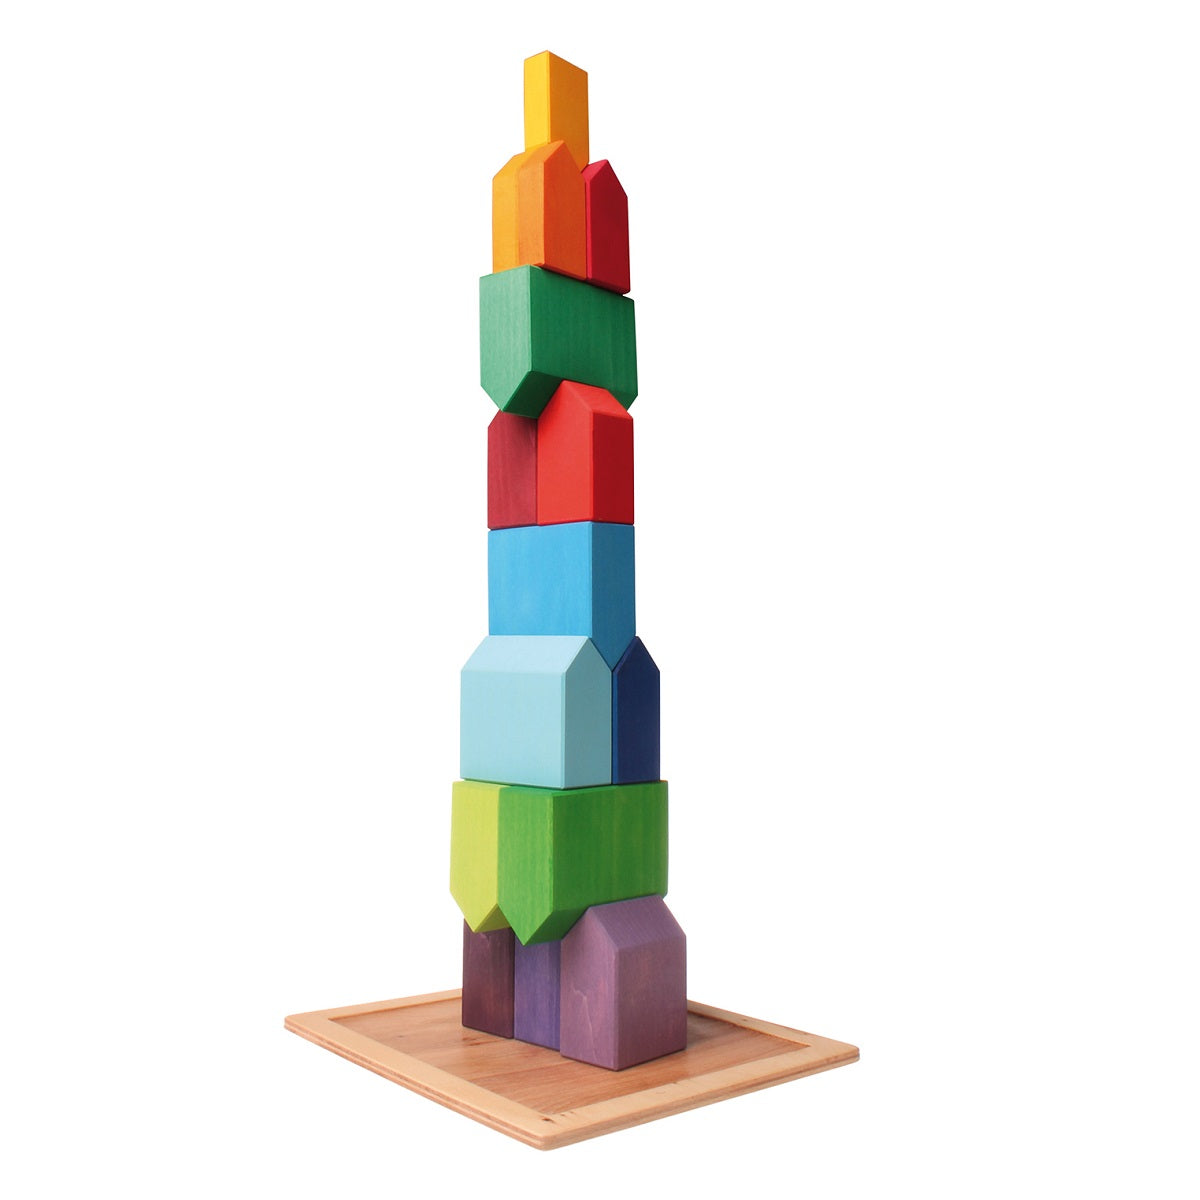 on a white background, a natural wooden square tray, with multi coloured houses stacked on top of each other into a tall tower.